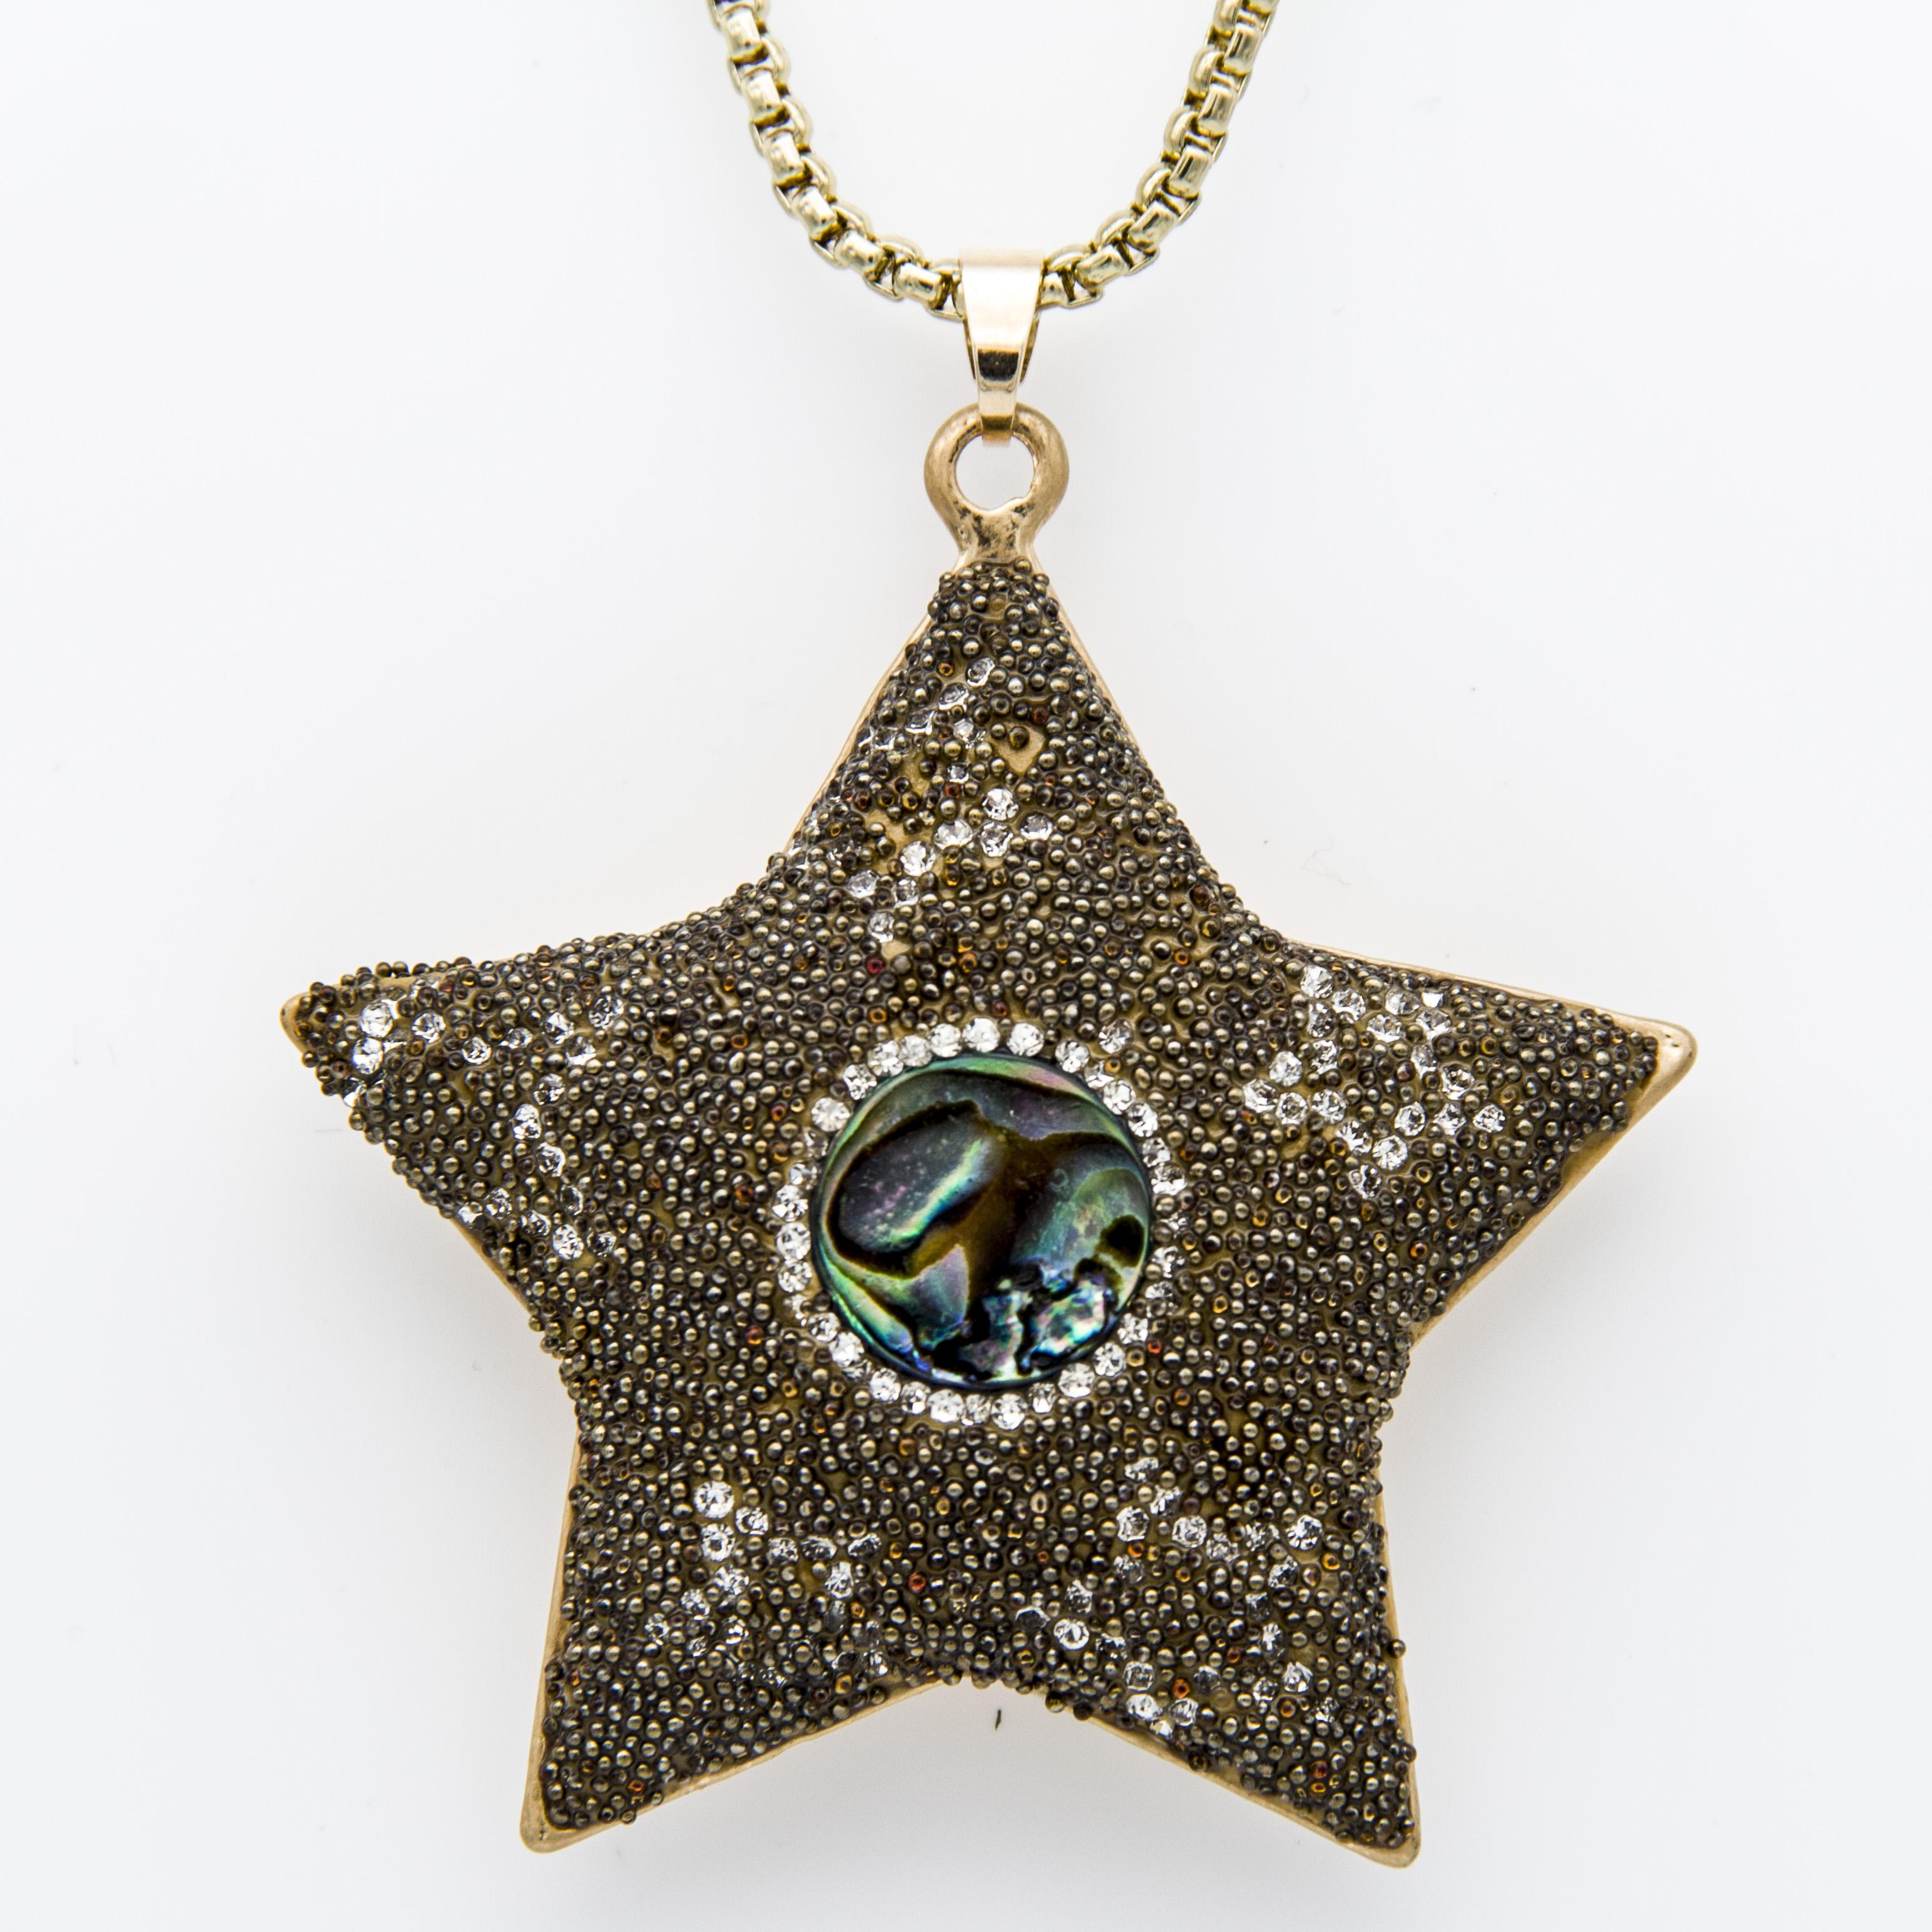 Wholesale New Seed Beads Rhinestone Clay Metal Alloy Pentagon Pendant Chain  Necklace With Natural Shell Jewelry Valentine Gifts For Women Wholesale  Popular ... de8bde395d73